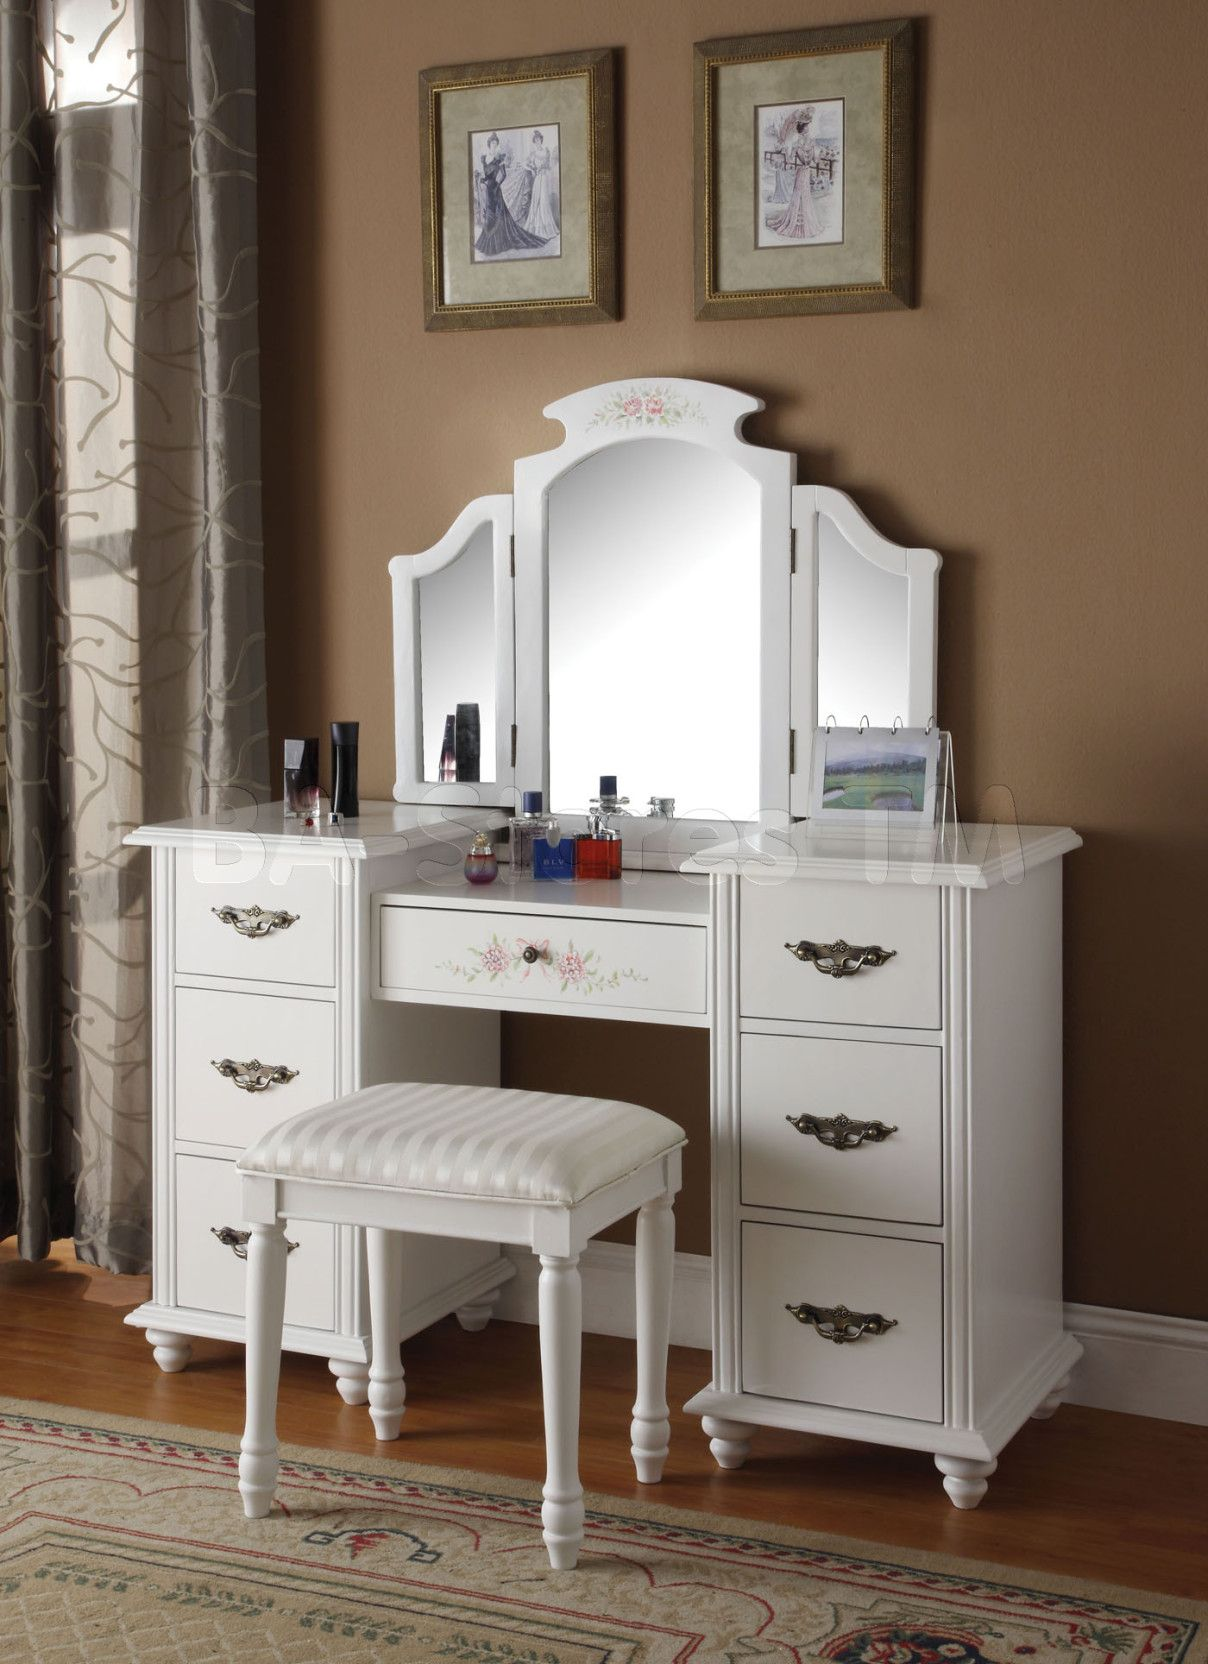 Picture of: Bedroom Vanity with Drawers Small